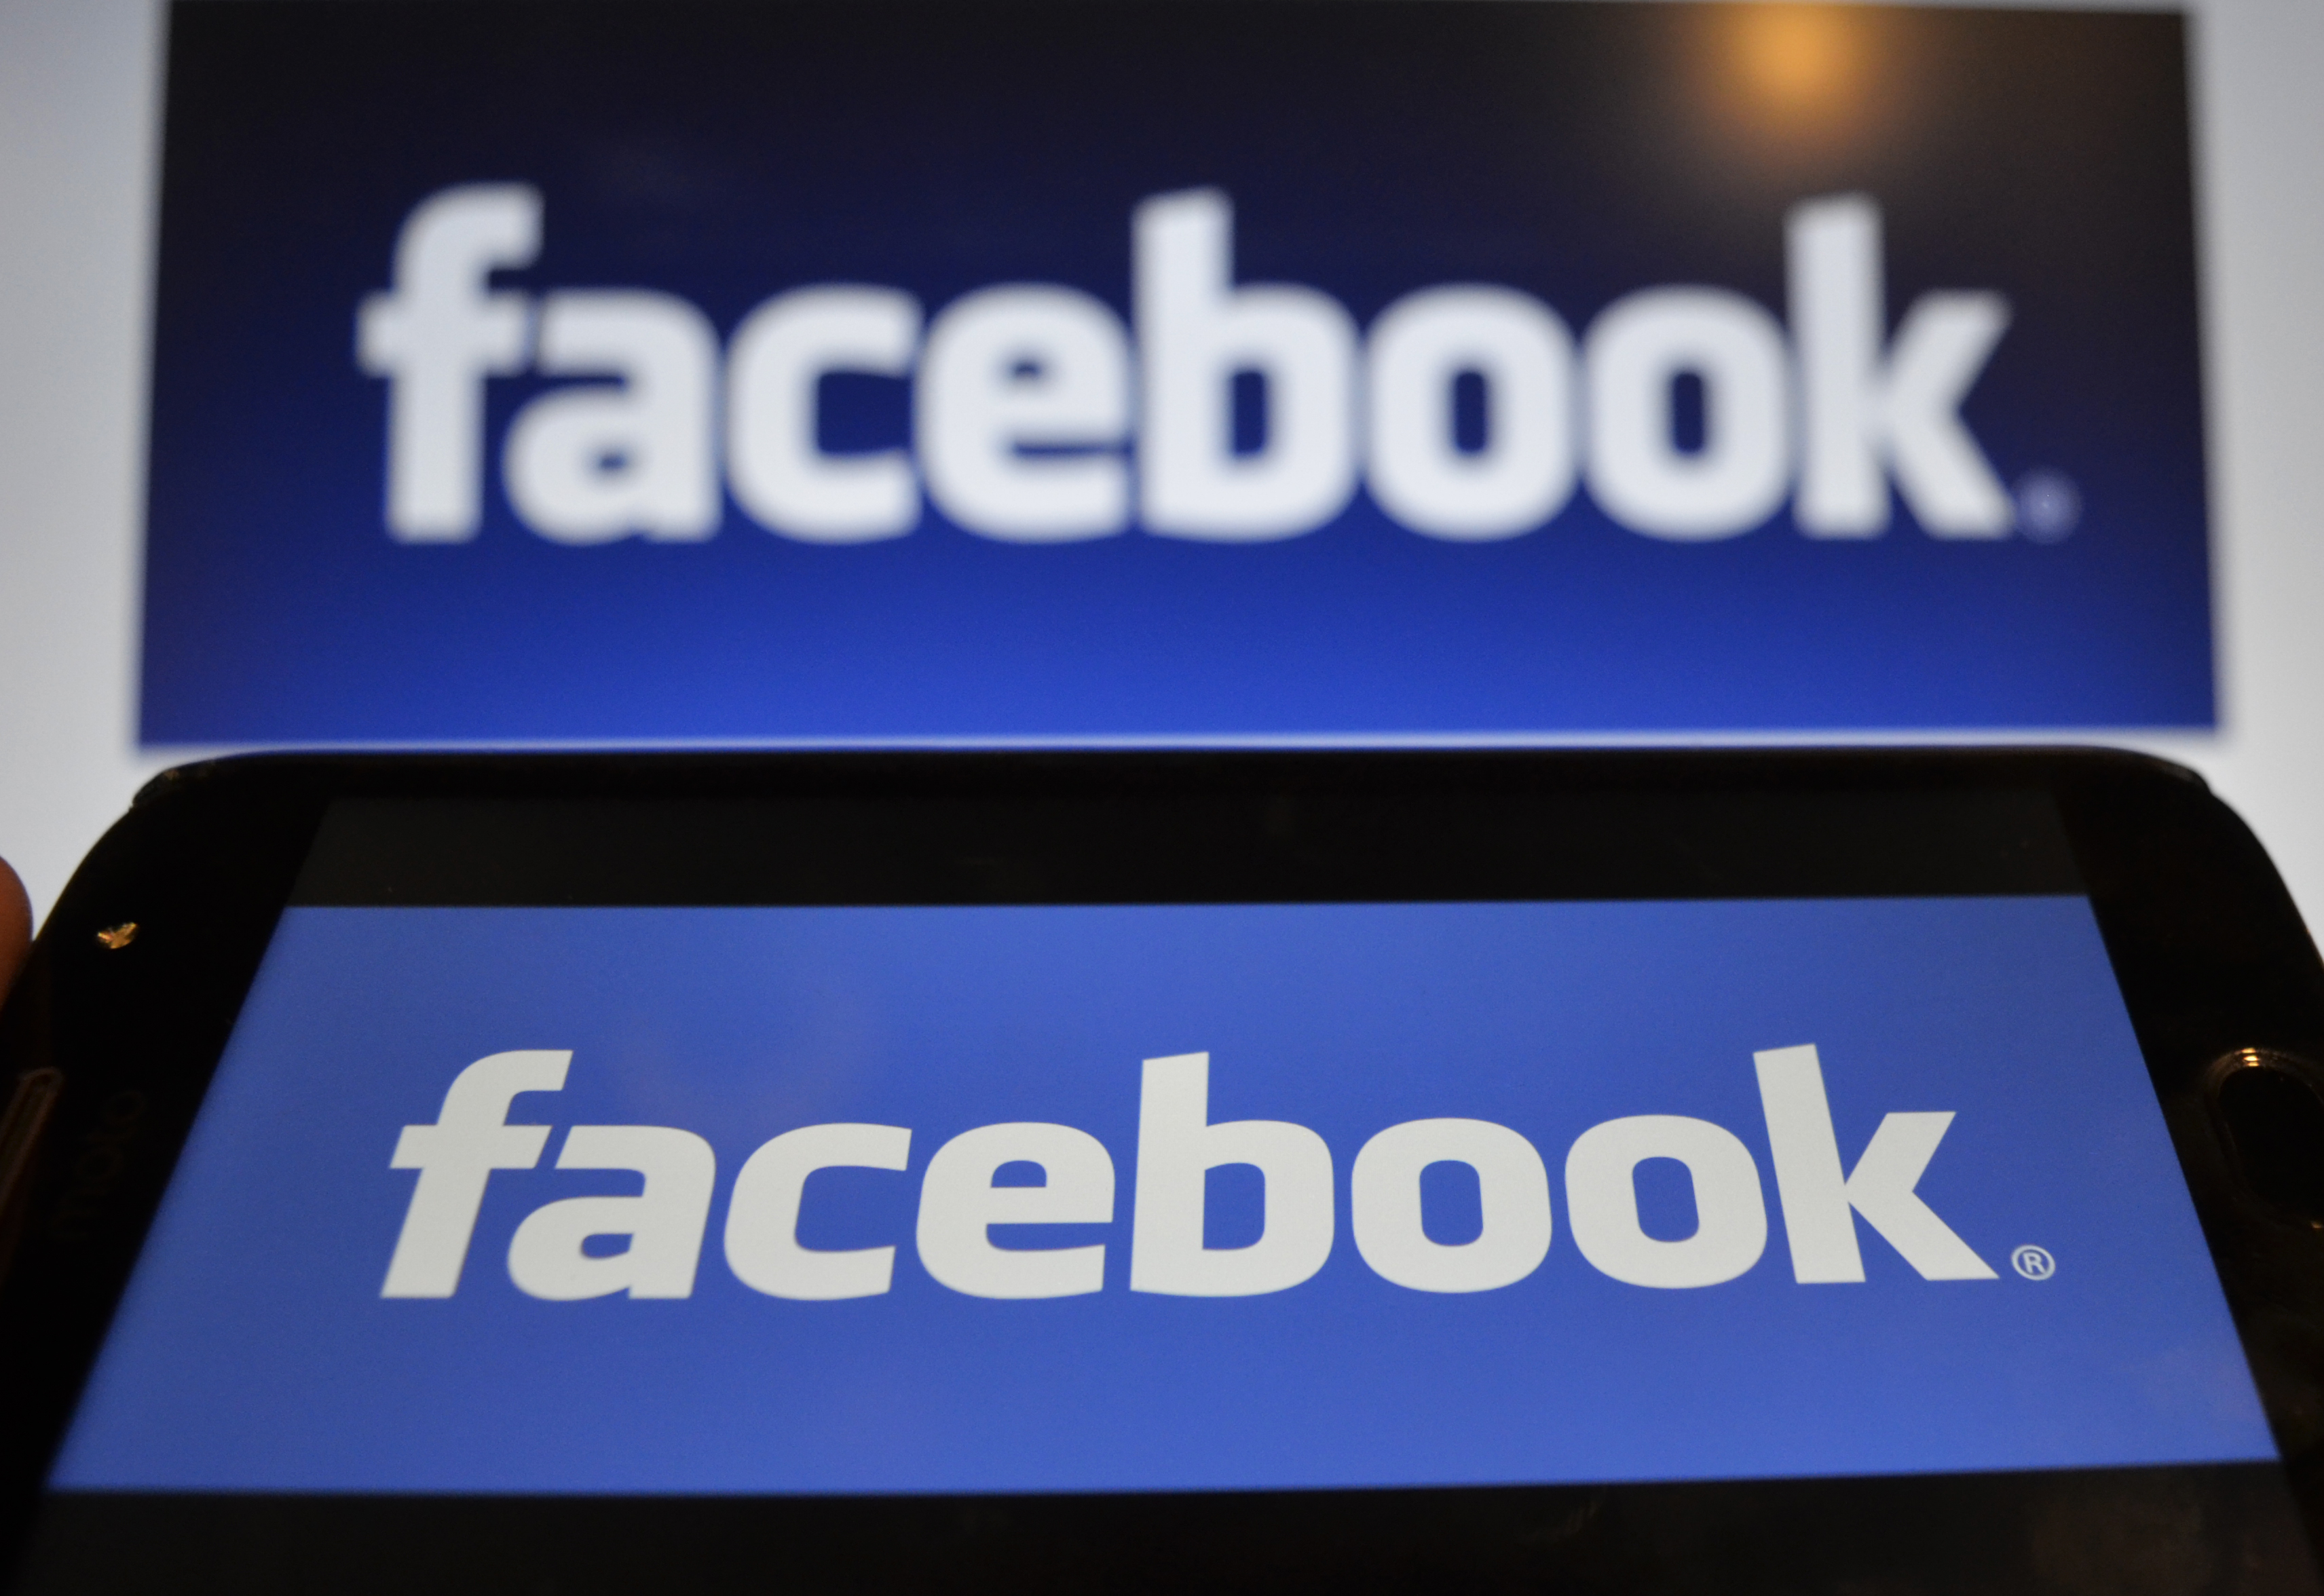 In this photo illustration a Facebook logo can be seen on a mobile screen as well as on a laptop screen, Kolkata, India, 16 August, 2019.Facebook users sues the world's largest social media network over a 2018 data breach which failed to warn data risks tied to its single sign-on tools even though it protected its employees according to an Indian media report.